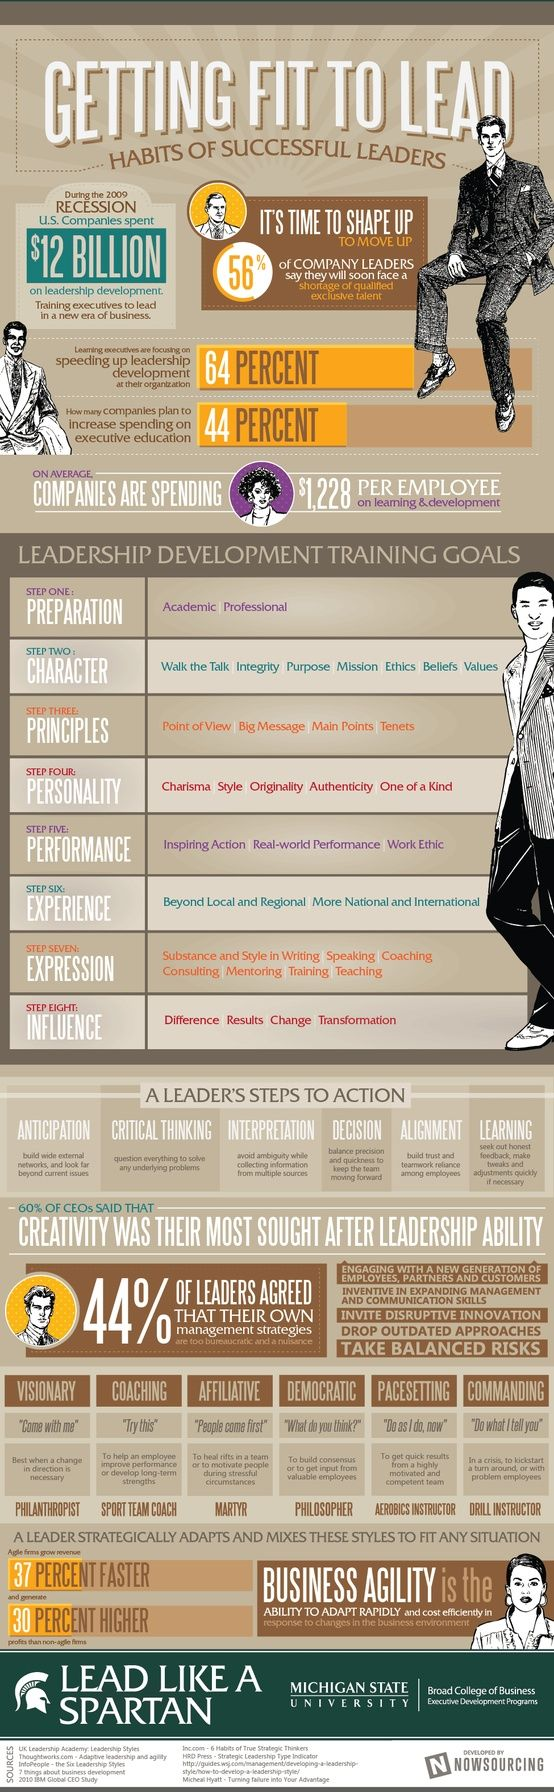 Getting fit to lead: Habits of successful leaders [infographic] - Holy Kaw!